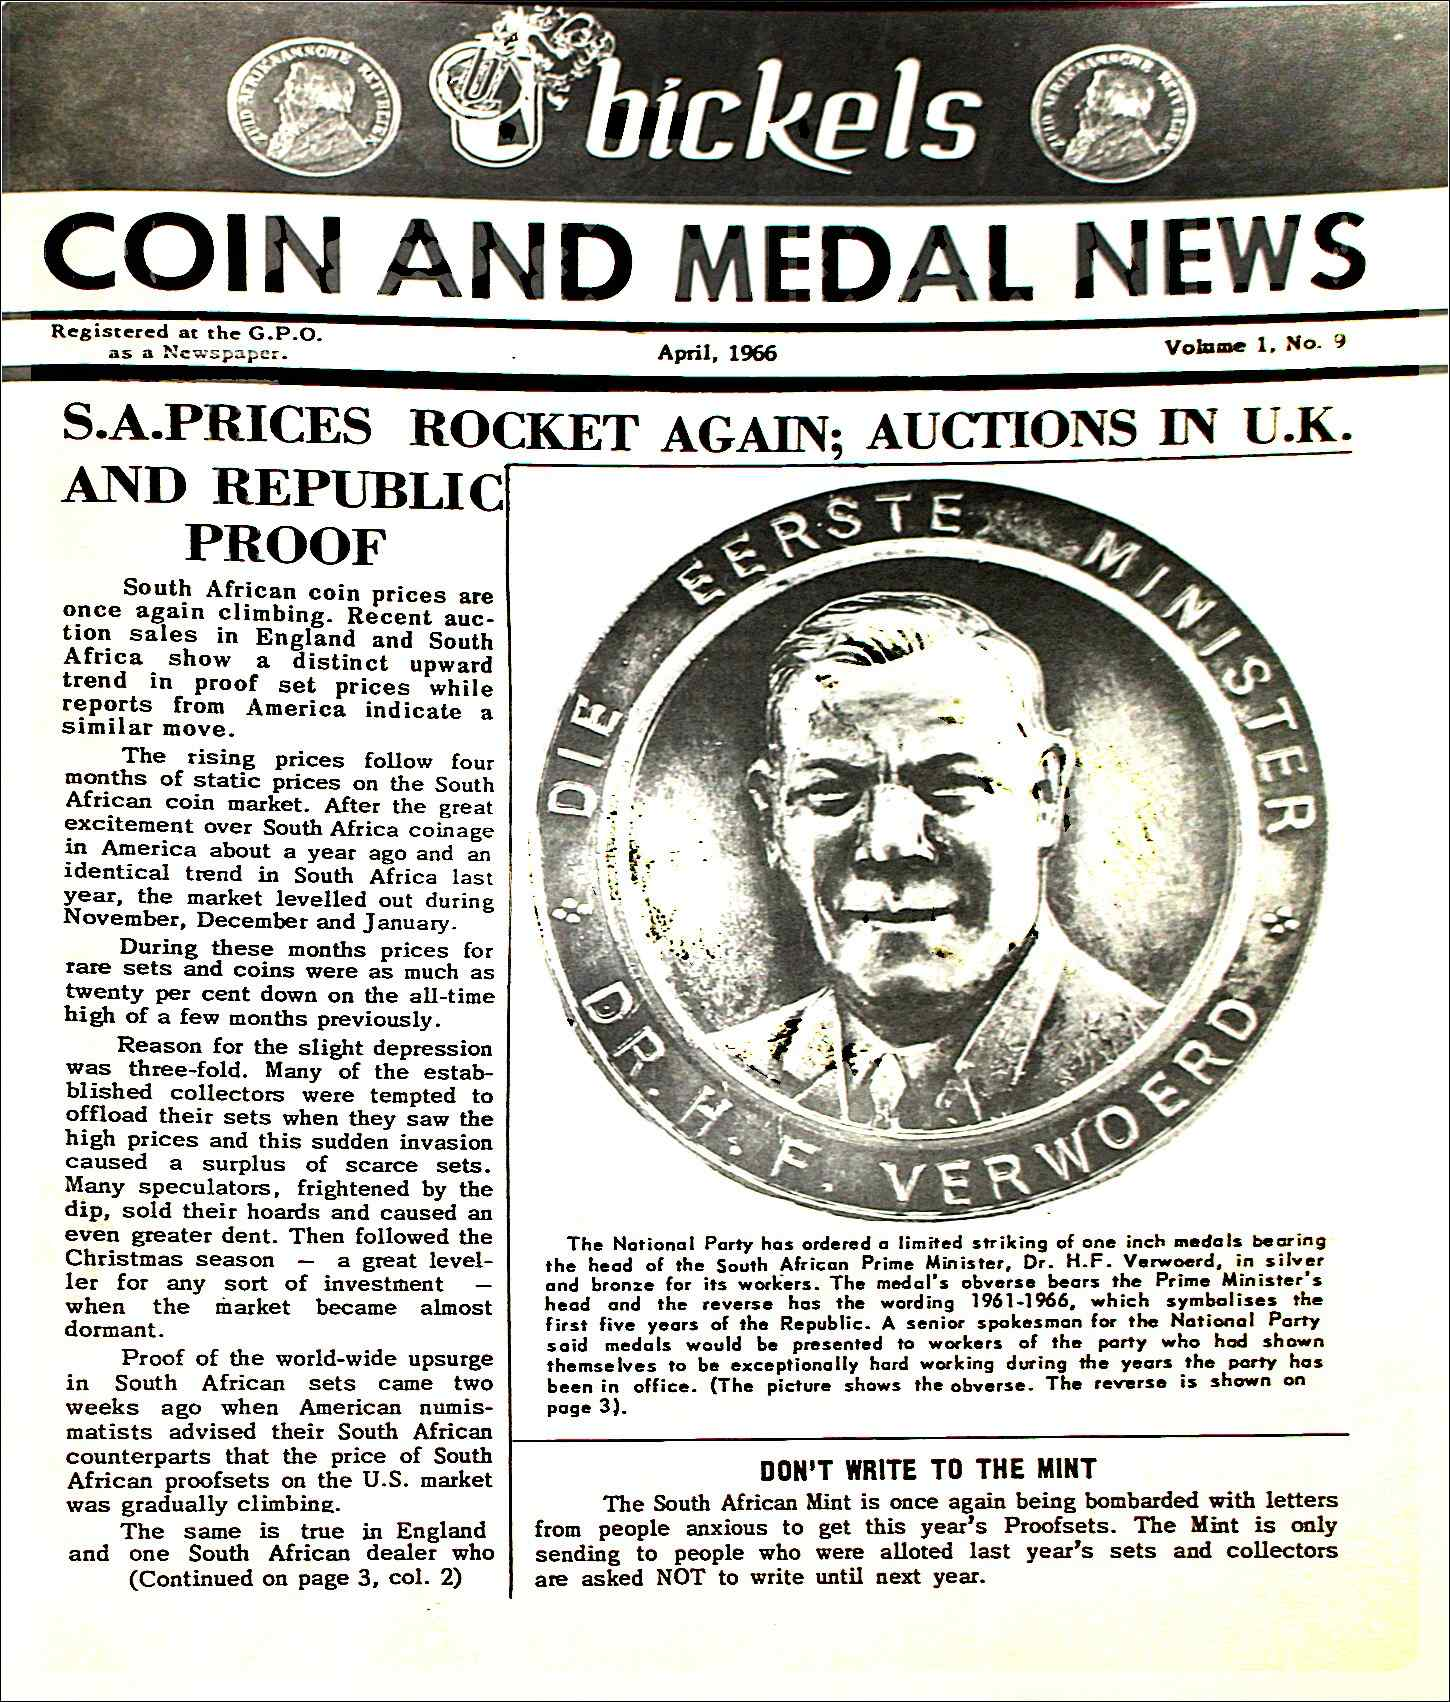 Bickels Coin & Medal News April 1966 Vol 1 No 9